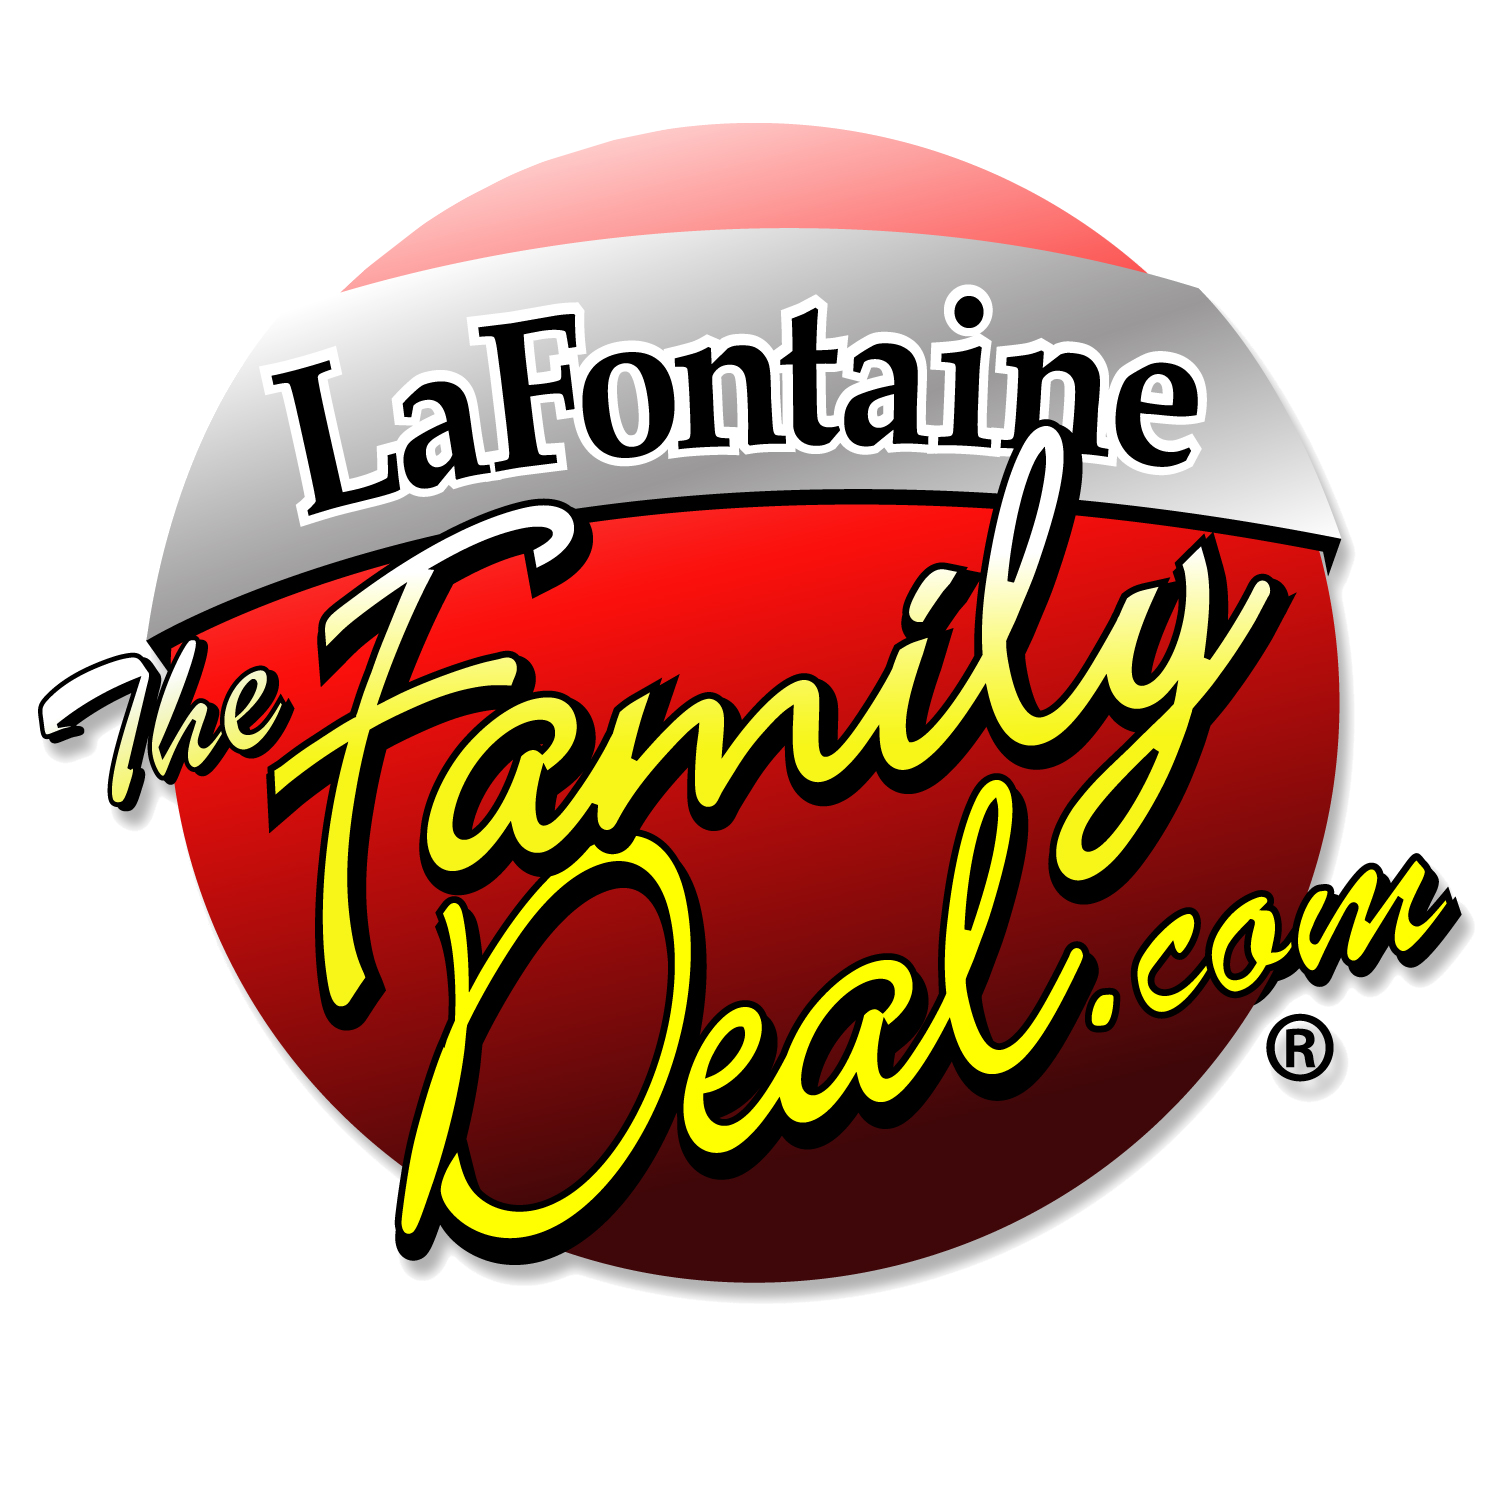 Lafontaine Cadillac Buick Gmc >> The Family Deal Blog - Official Blog of the LaFontaine Automotive Group in Michigan